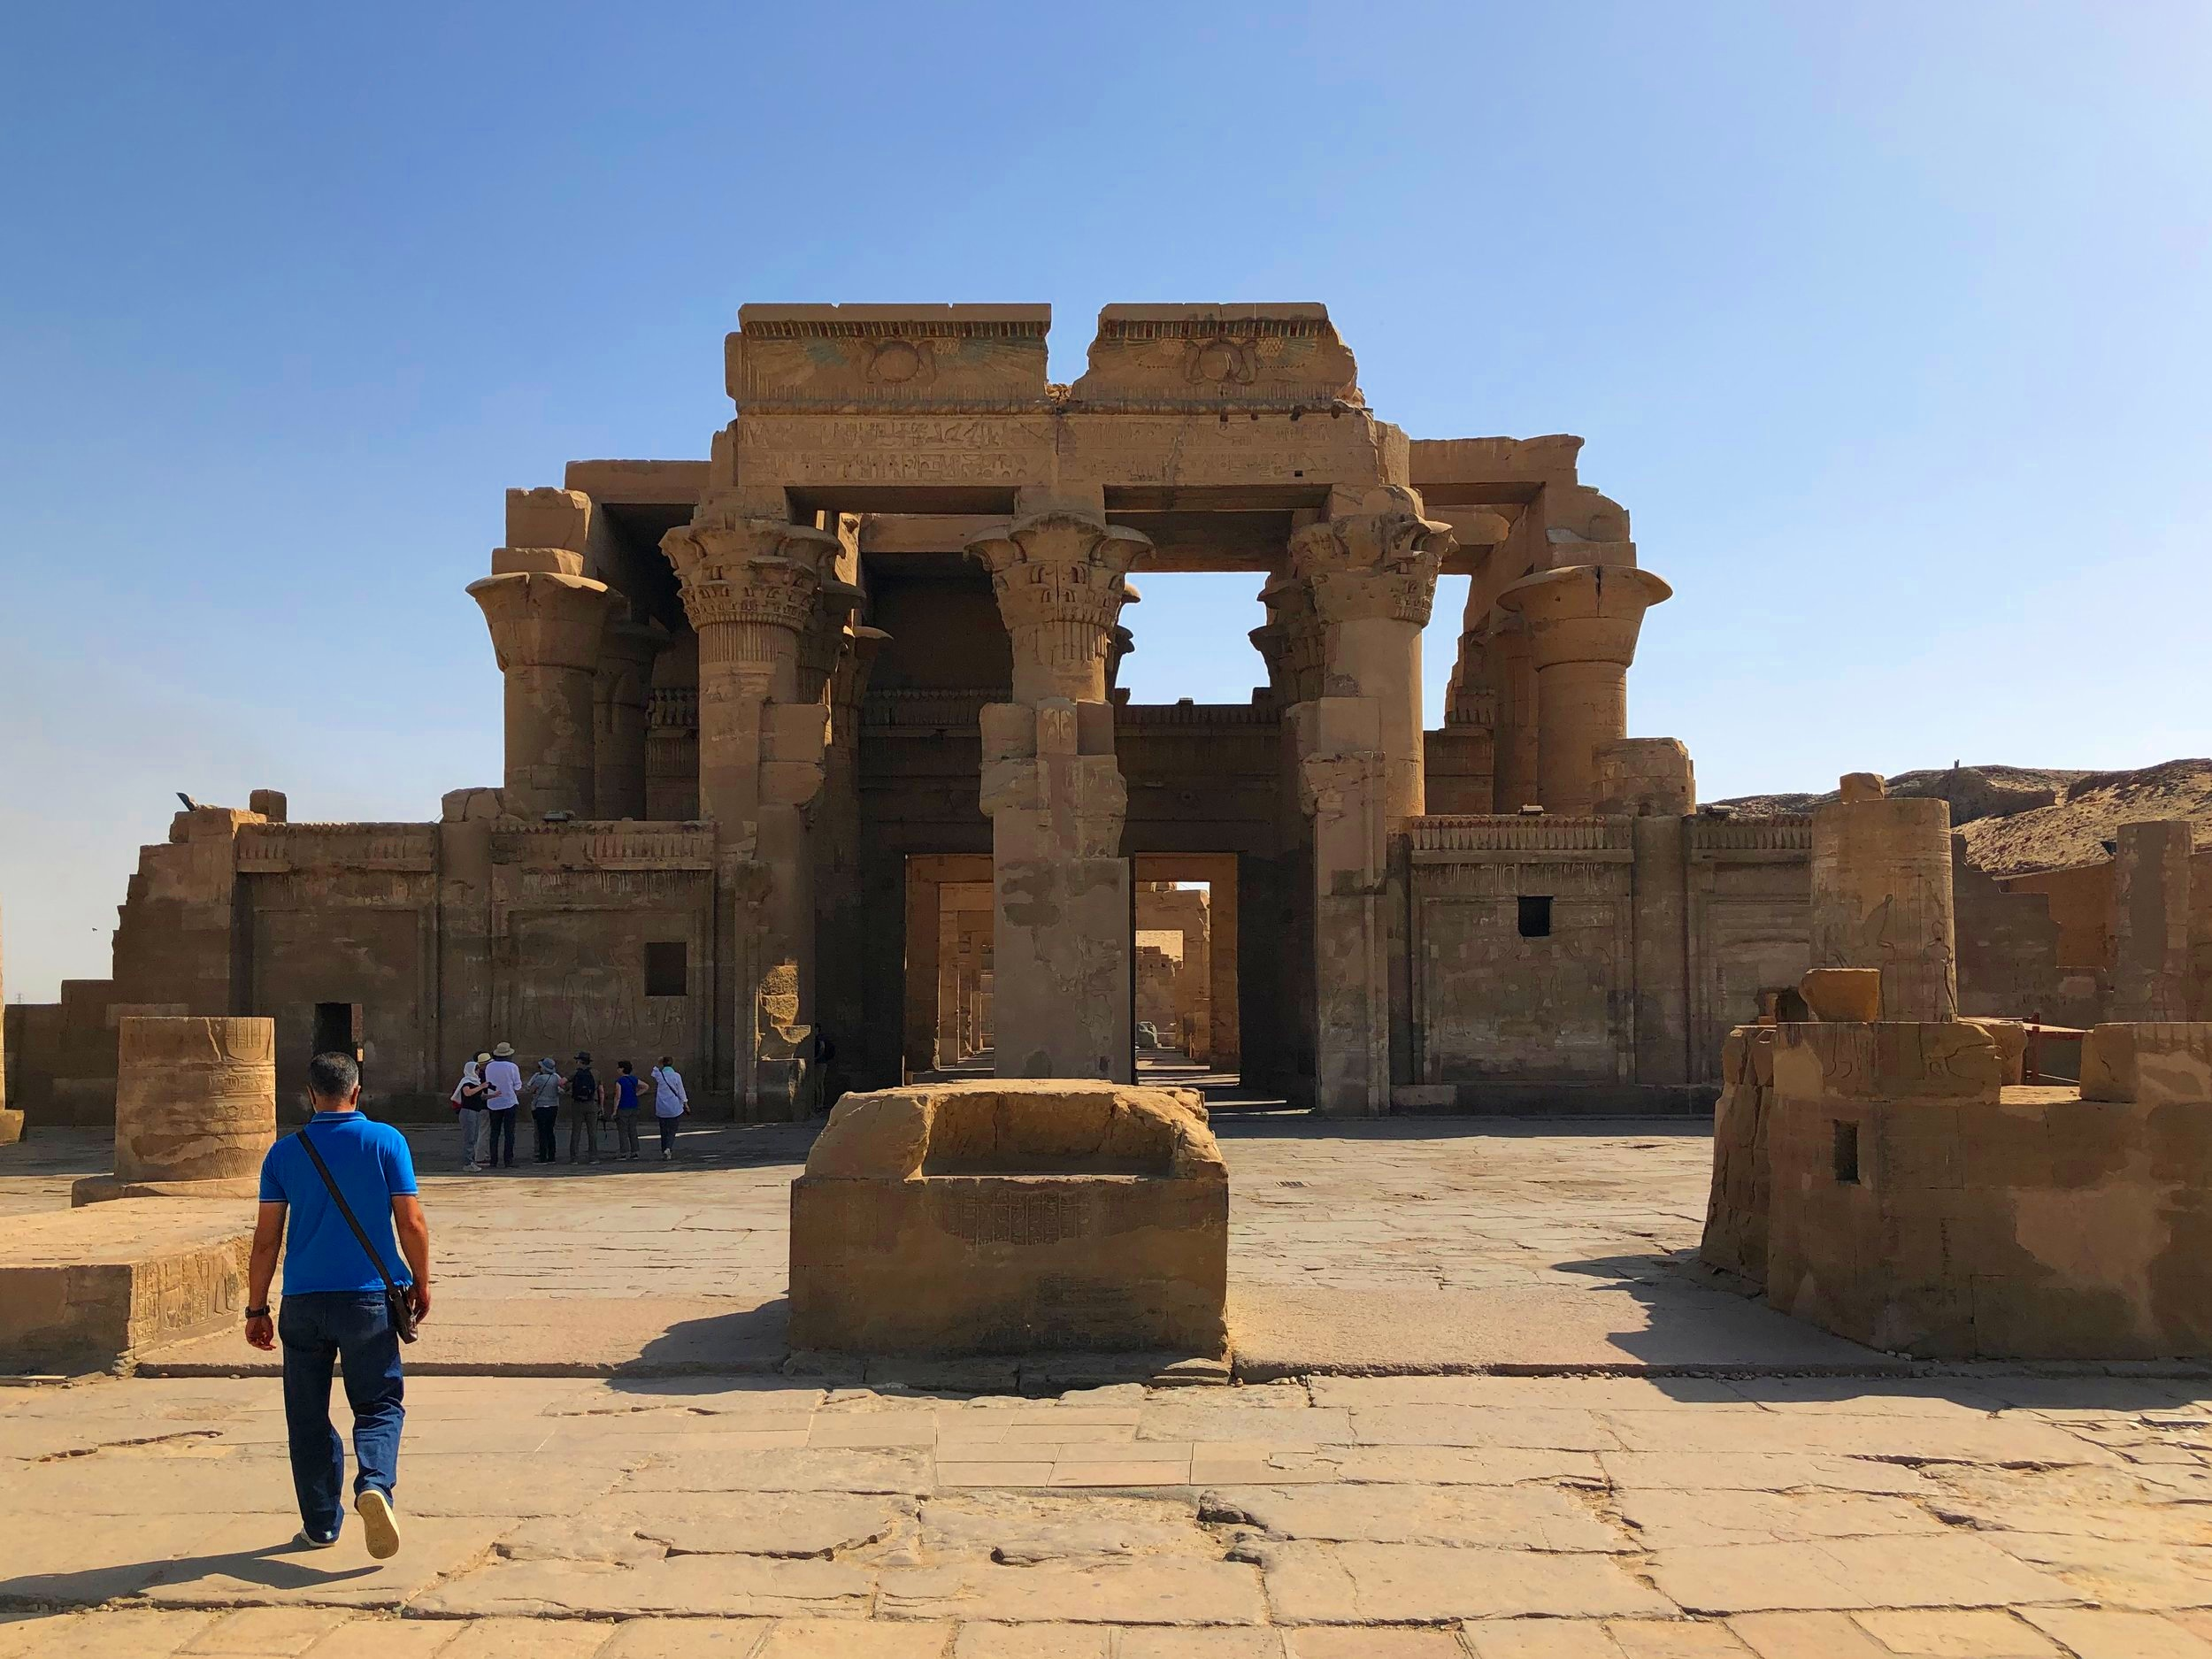 The symmetry of the temple, half devoted to Sobek, half to Horus, is a large part of Kom Ombo's appeal